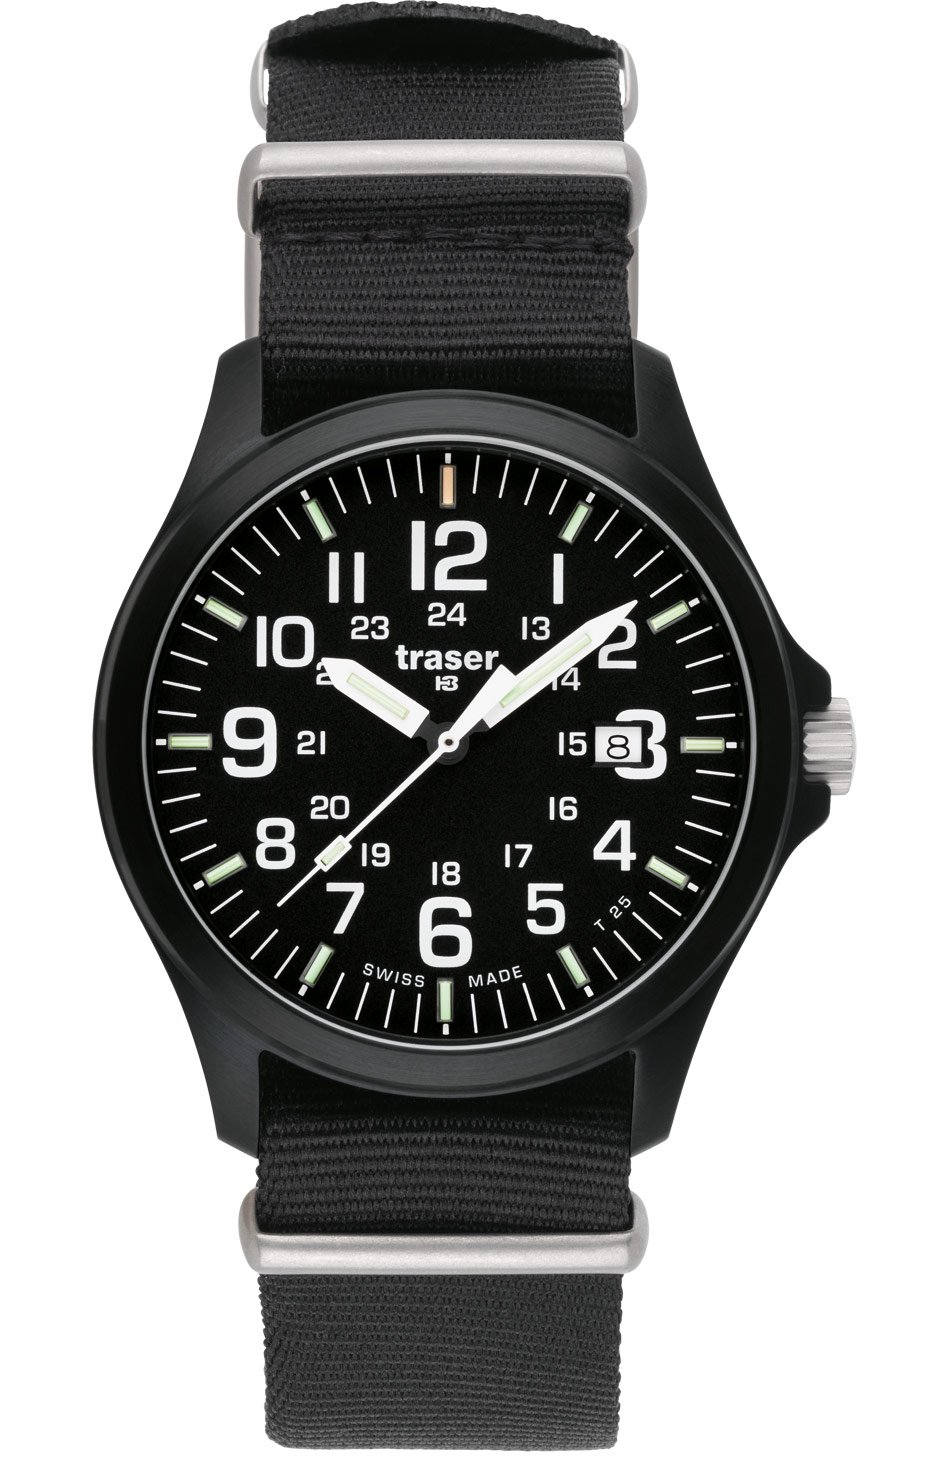 traser H3 Officer Pro Sapphire Watch | Nato Strap - Black by Traser H3 (Image #1)